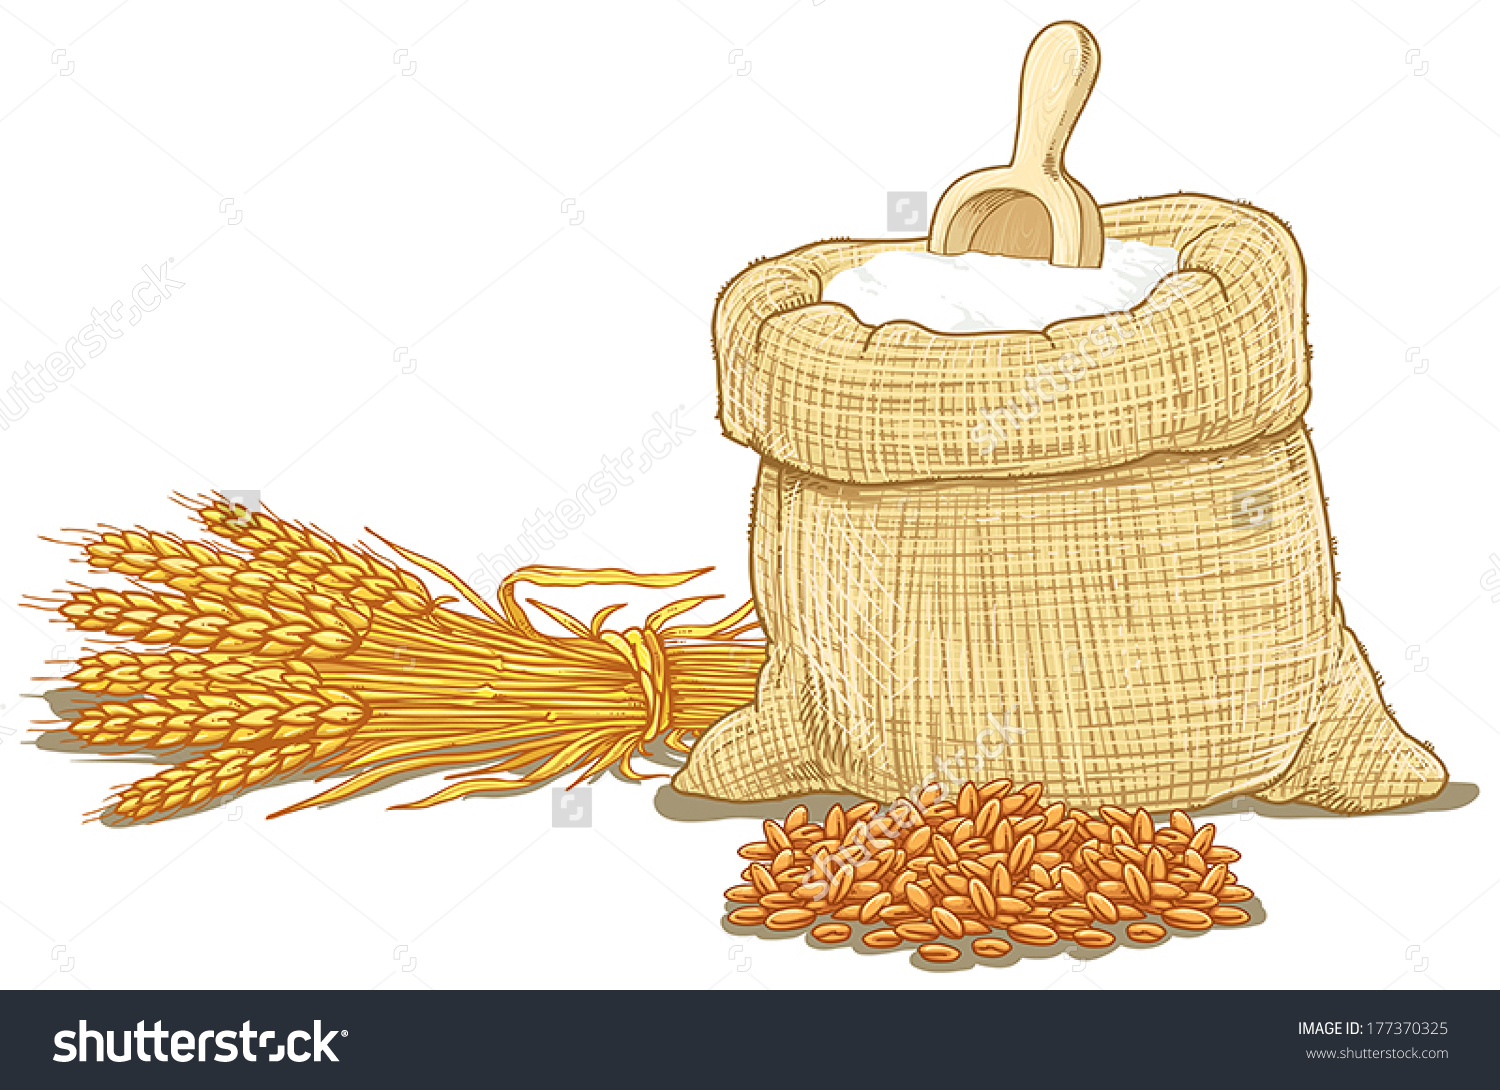 Wheat flour clipart - Clipground